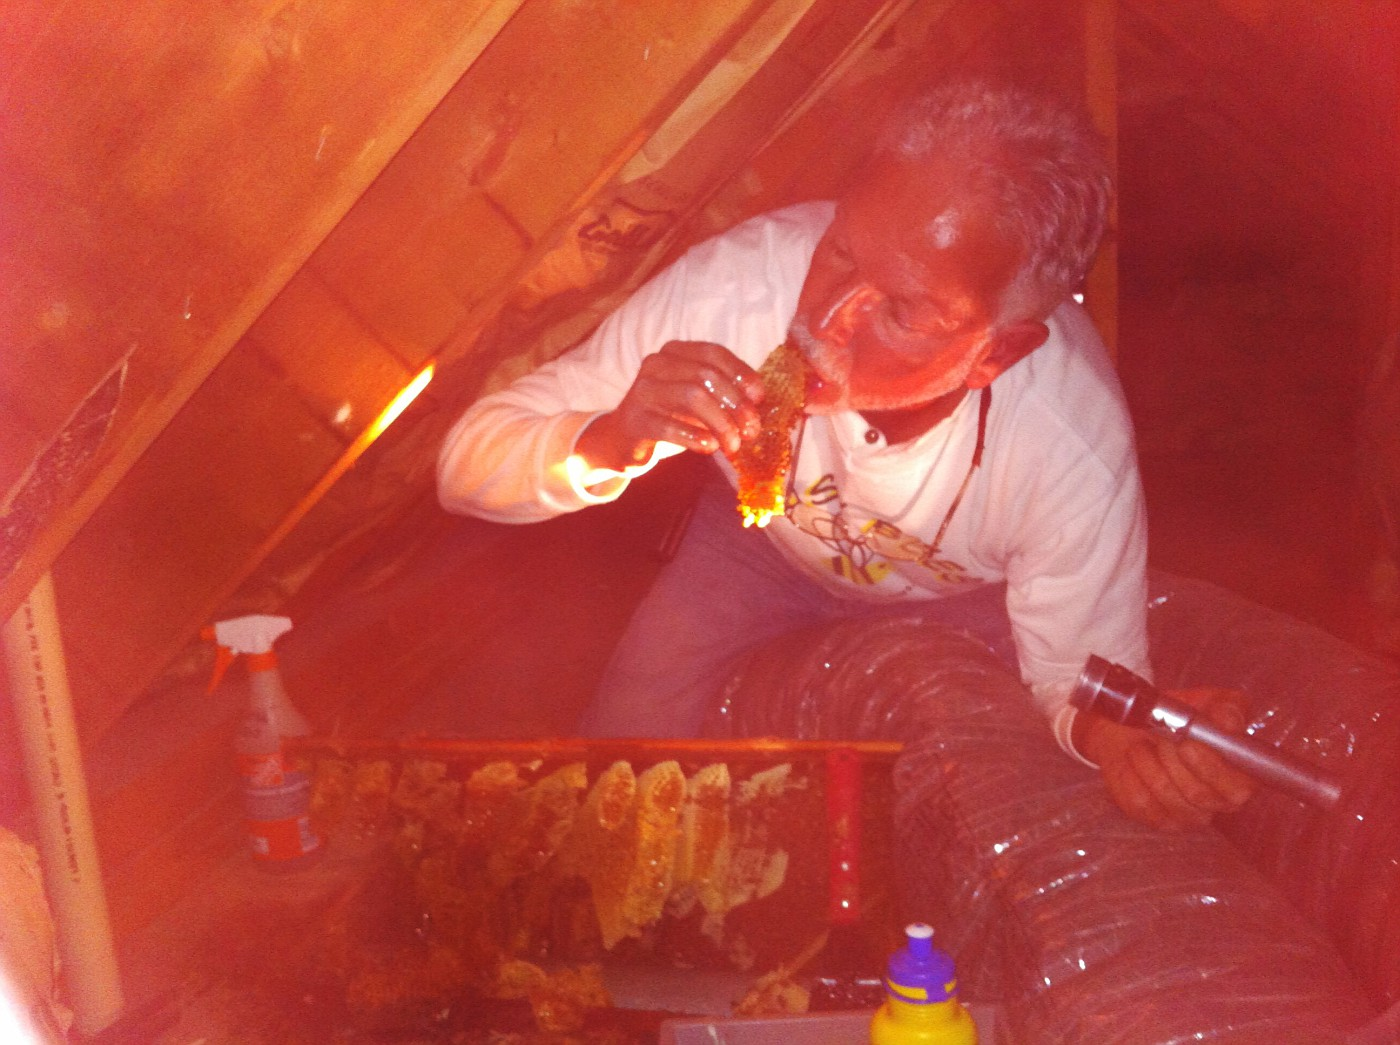 Honey Bee Extraction in very tight quarters in an attic knee wall in Cape May, NJ.  Yes, I am sampling the Honey with bees on the comb.  The Philadelphia Inquirer was there.  Got a story and awesome pix & video.  In Sunday's paper 4-29-2012. Gary